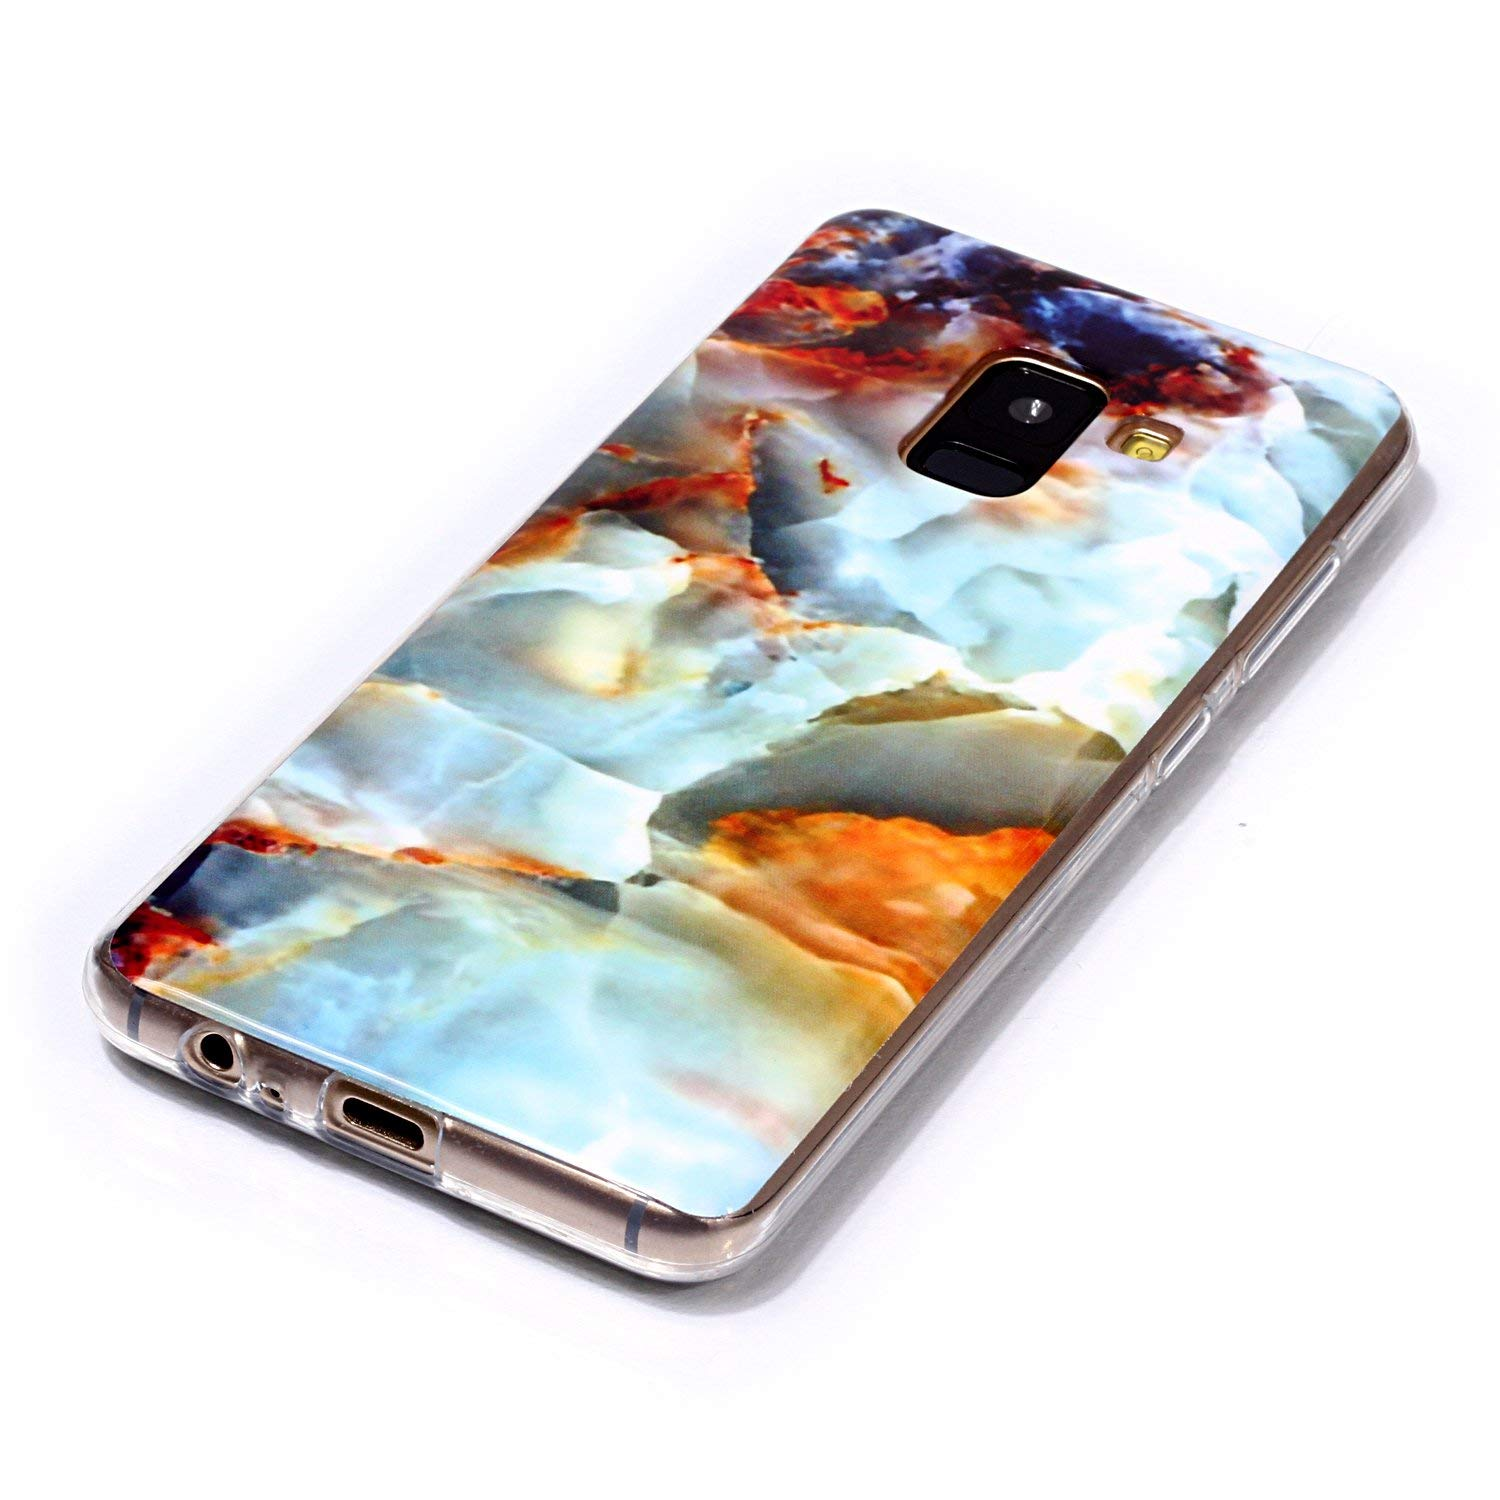 for Samsung Galaxy A6 2018 Marble Case with Screen Protector,Unique Pattern Design Skin Ultra Thin Slim Fit Soft Gel Silicone Case,QFFUN Shockproof Anti-Scratch Protective Back Cover - Fire Cloud by QFFUN (Image #3)